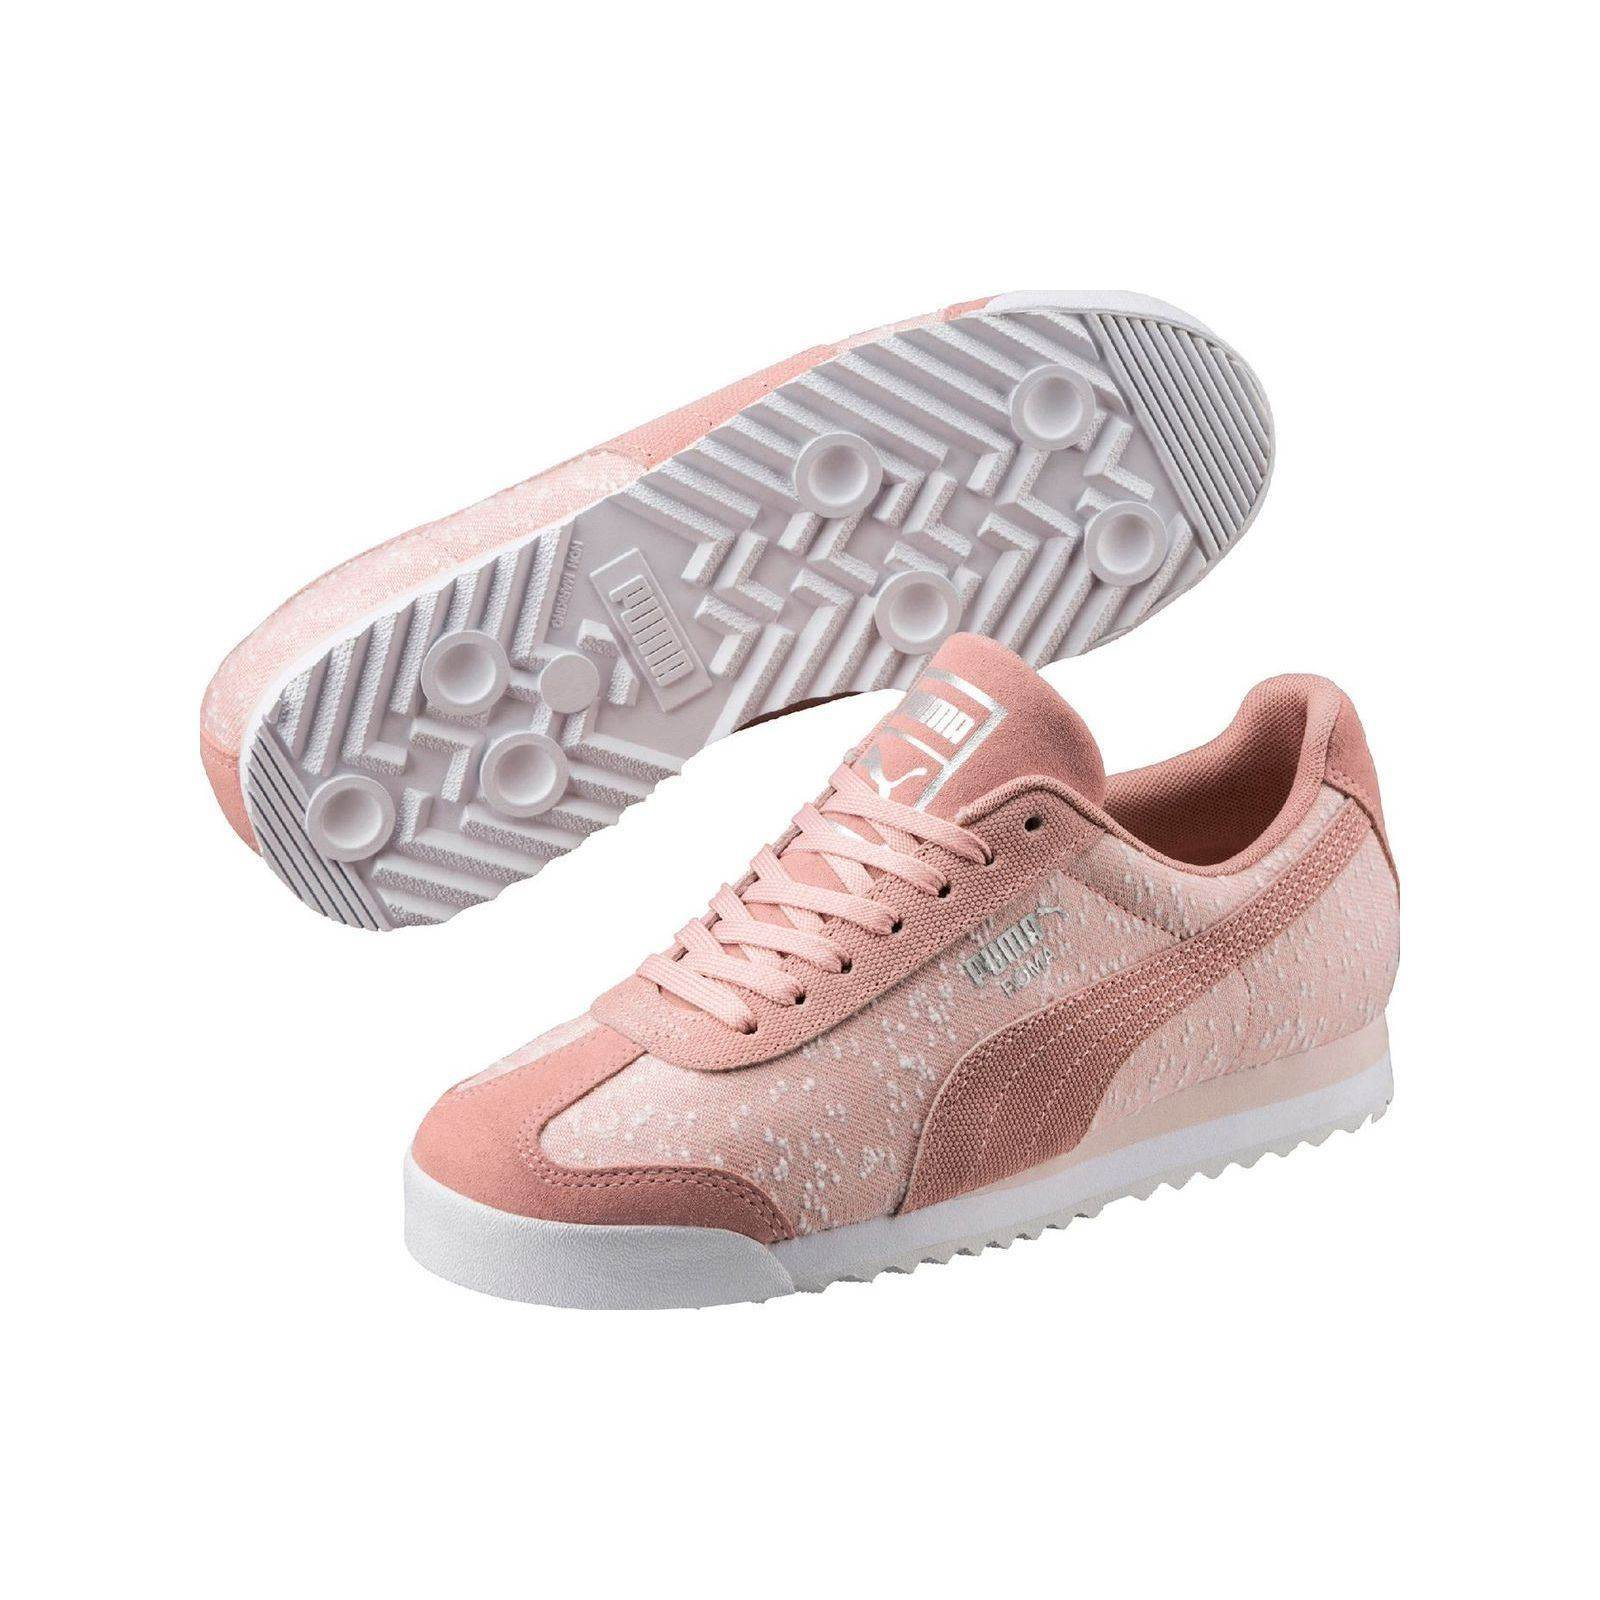 Puma Roma pebble - Baskets - rose